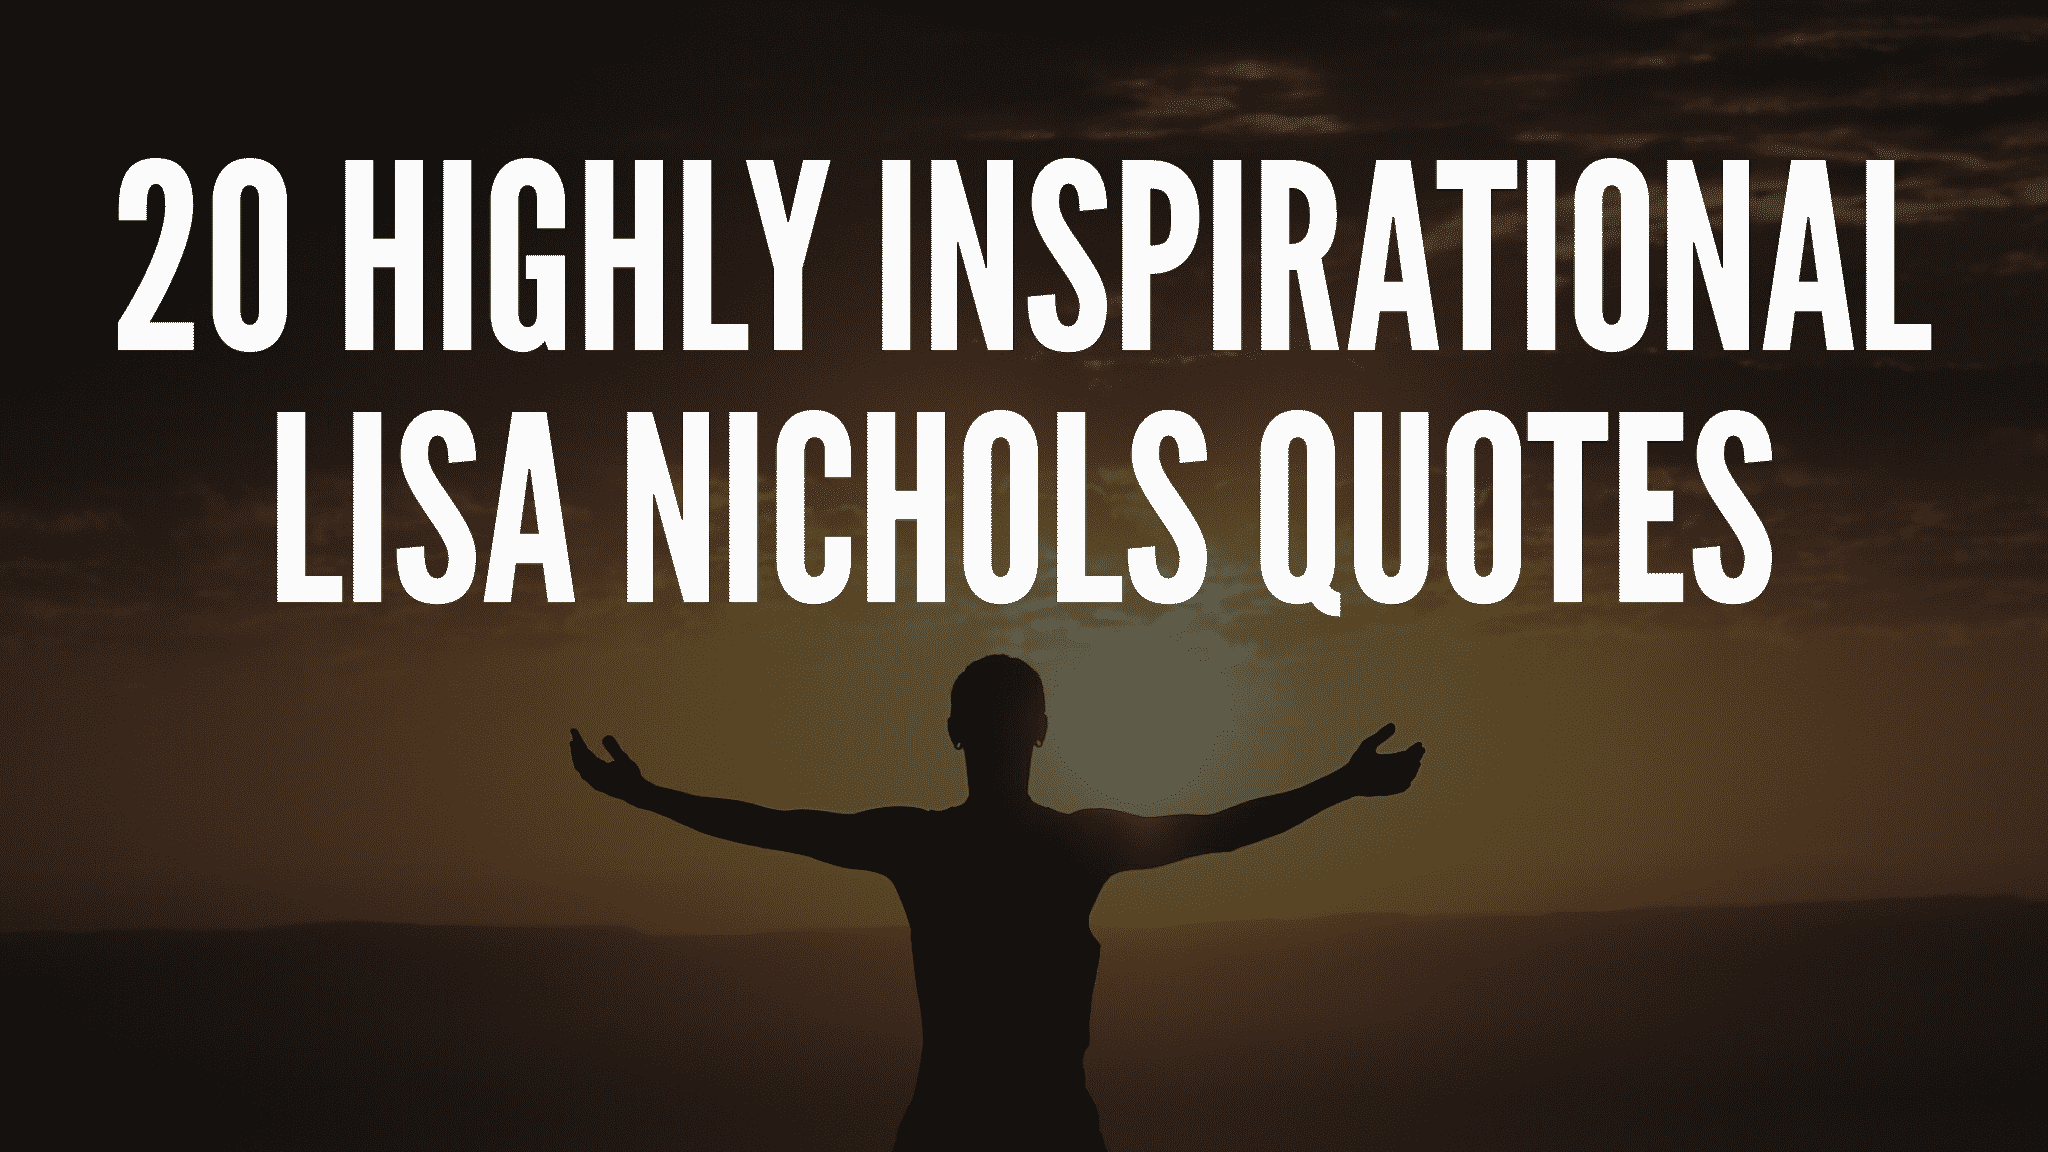 20 Highly Inspirational Lisa Nichols Quotes